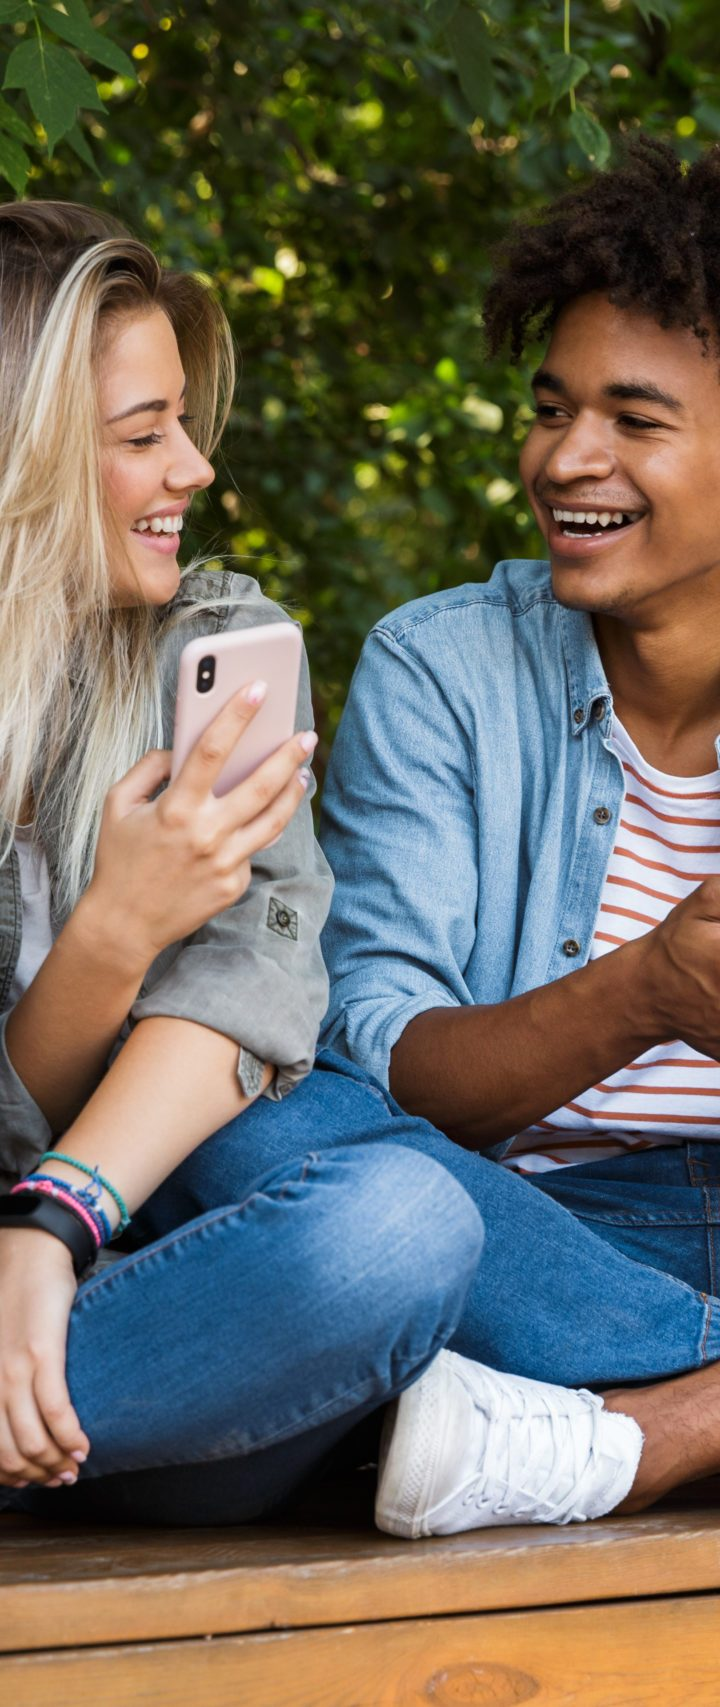 Image of excited emotional young loving couple using mobile phone outdoors in park.